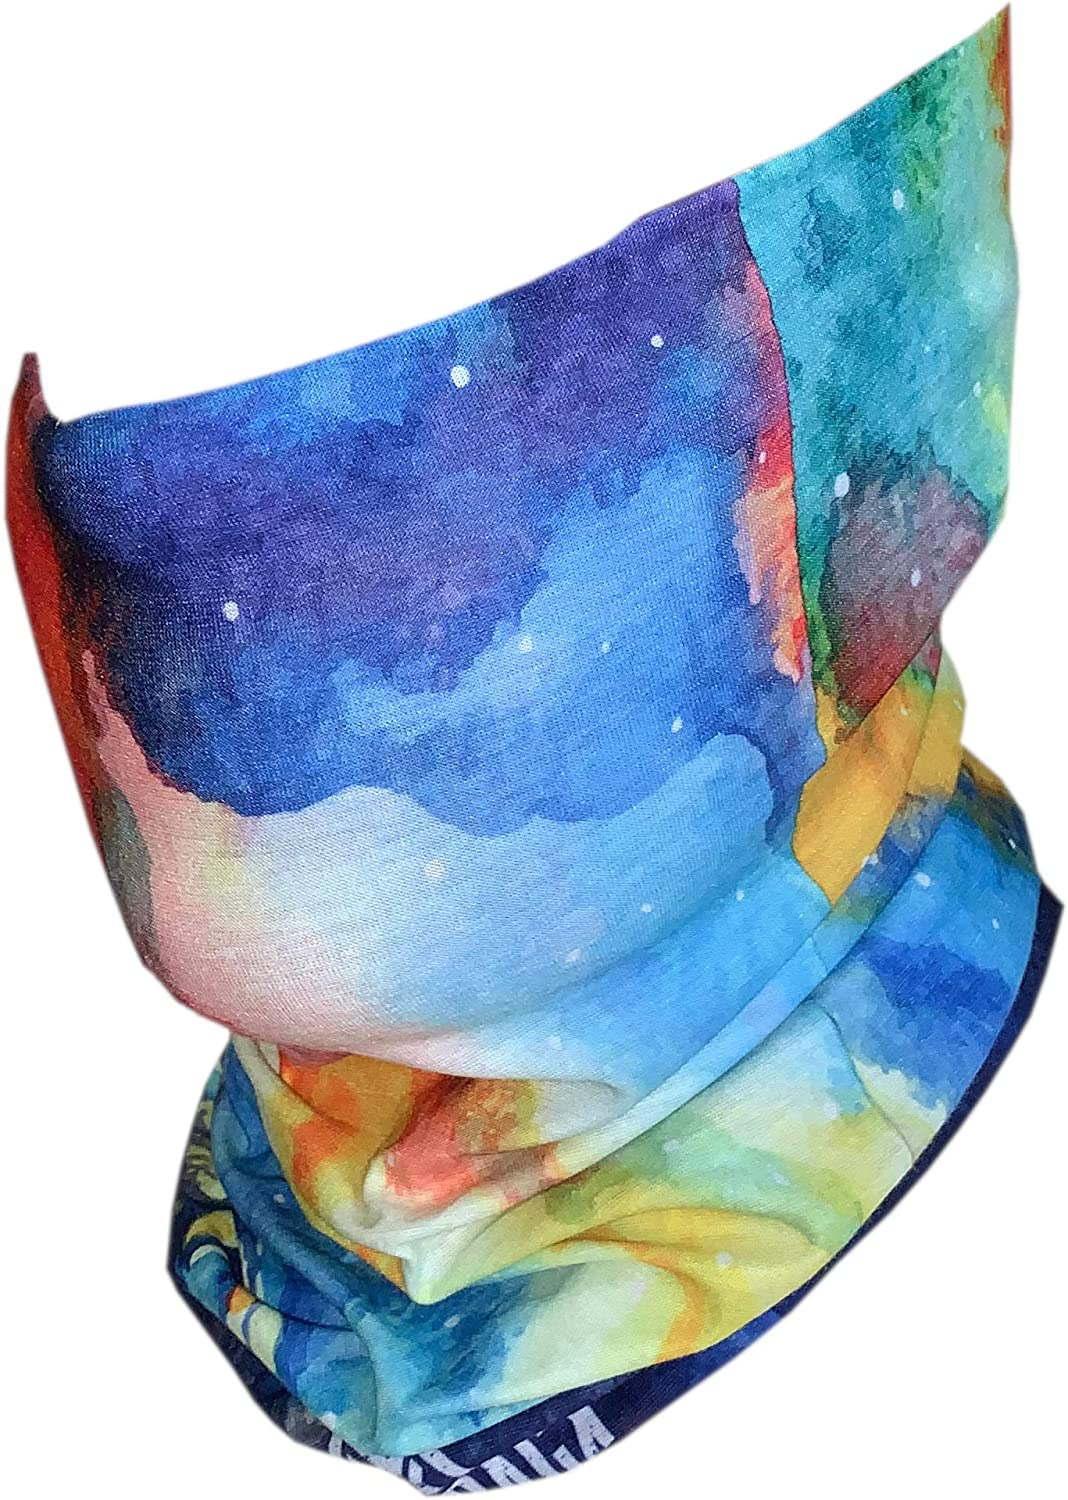 Snowboarding and Winter-Sports Face Mask Balaclava for Skiing Neck Gaiter Switchbak Designs 6 Pack